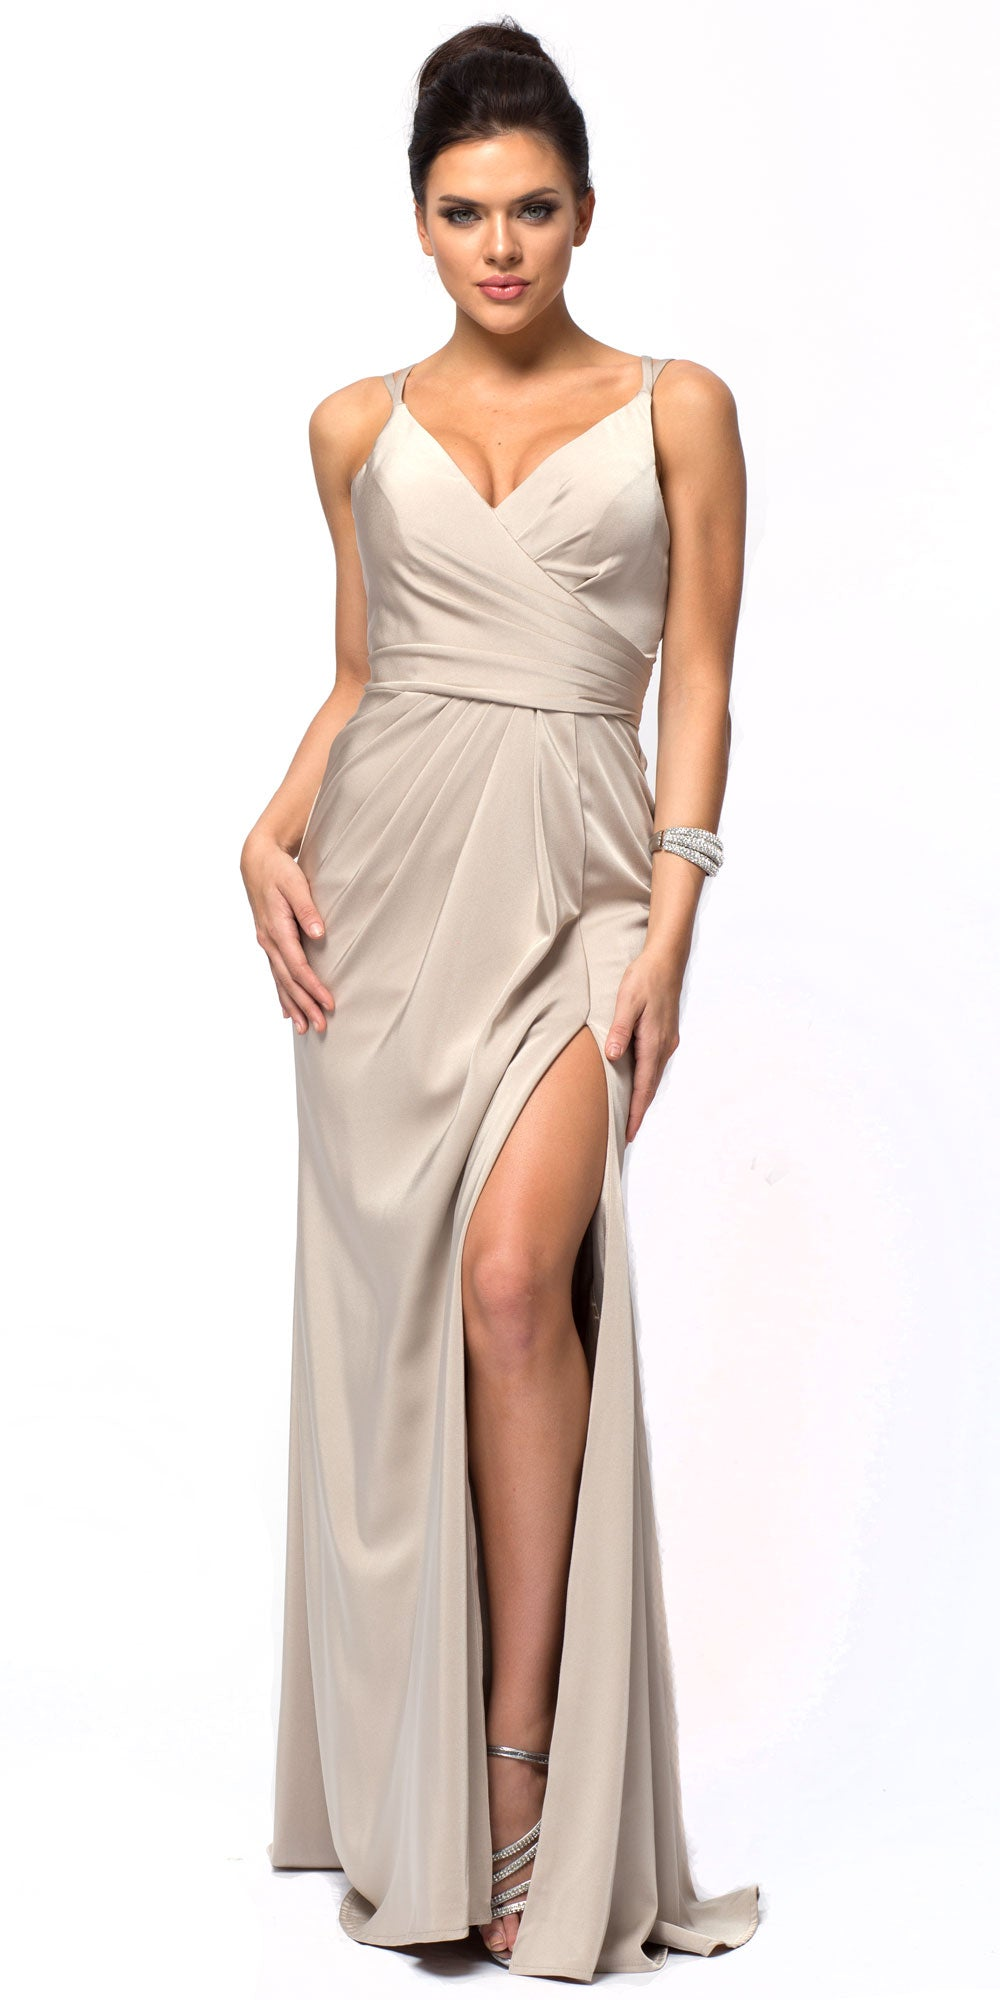 Image of Double Spaghetti Straps Overlay Bodice Long Bridesmaid Dress in Champaign